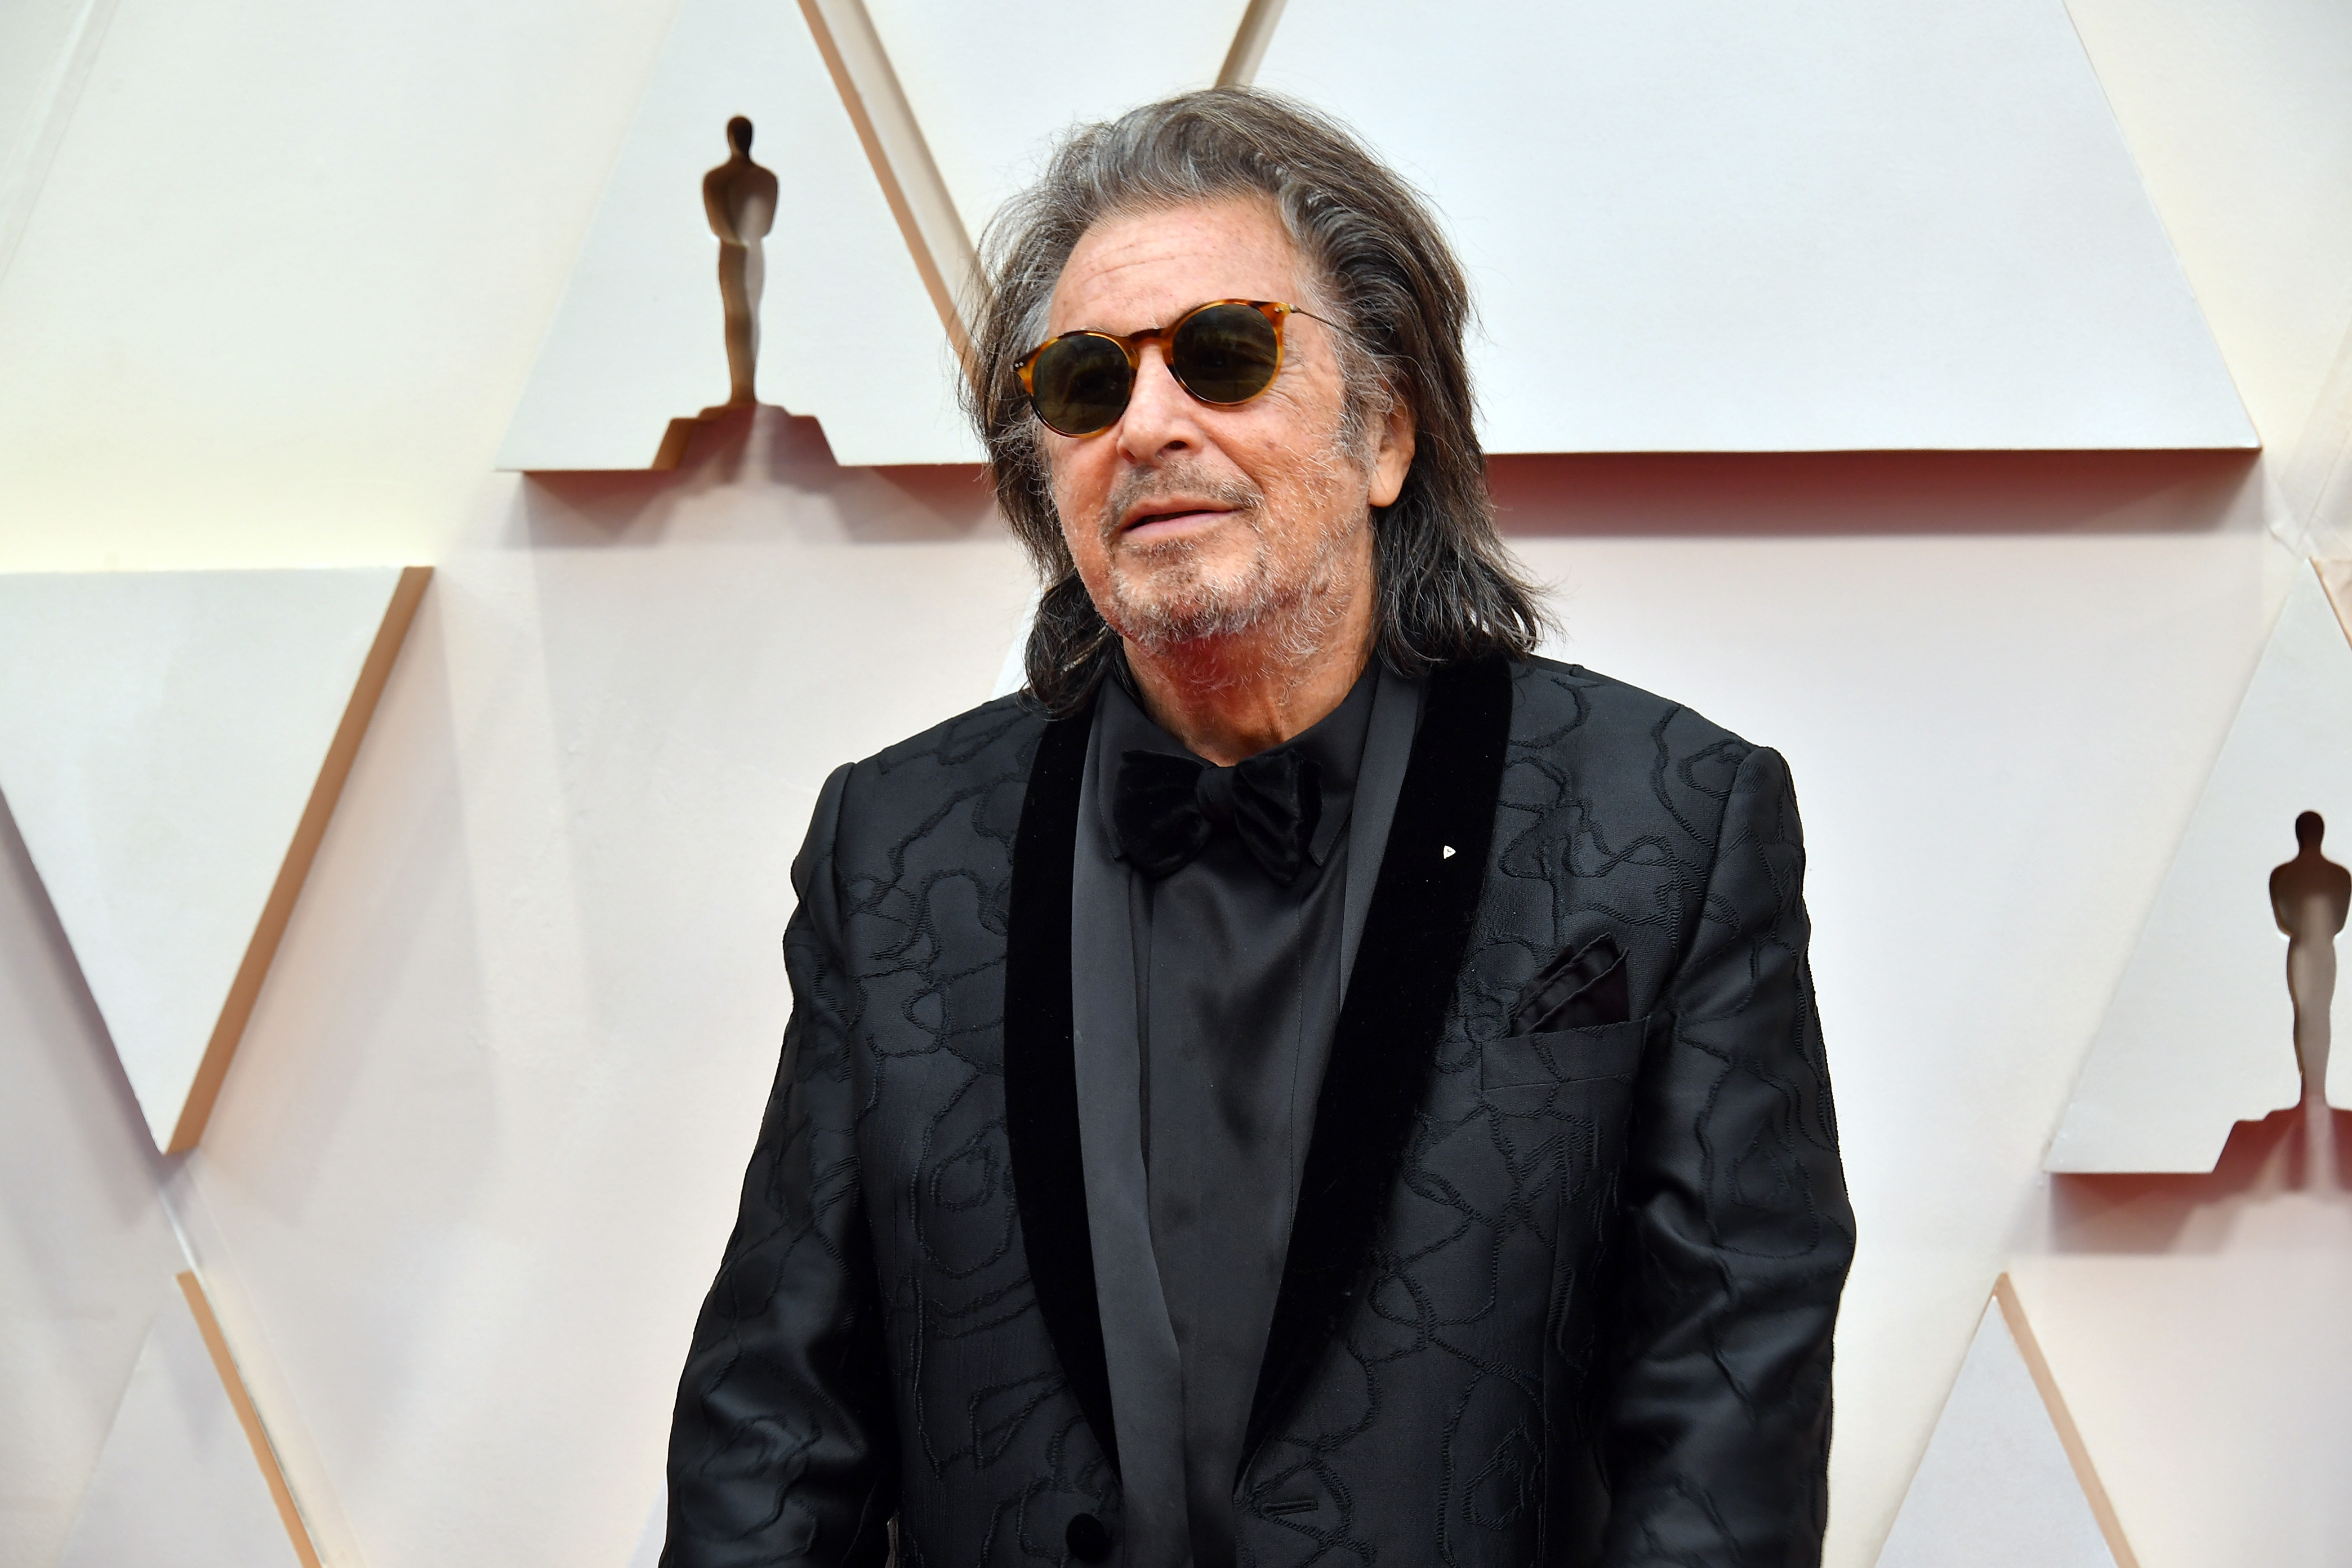 HOLLYWOOD, CALIFORNIA - FEBRUARY 09: Al Pacino attends the 92nd Annual Academy Awards at Hollywood and Highland on February 09, 2020 in Hollywood, California. (Photo by Amy Sussman/Getty Images)